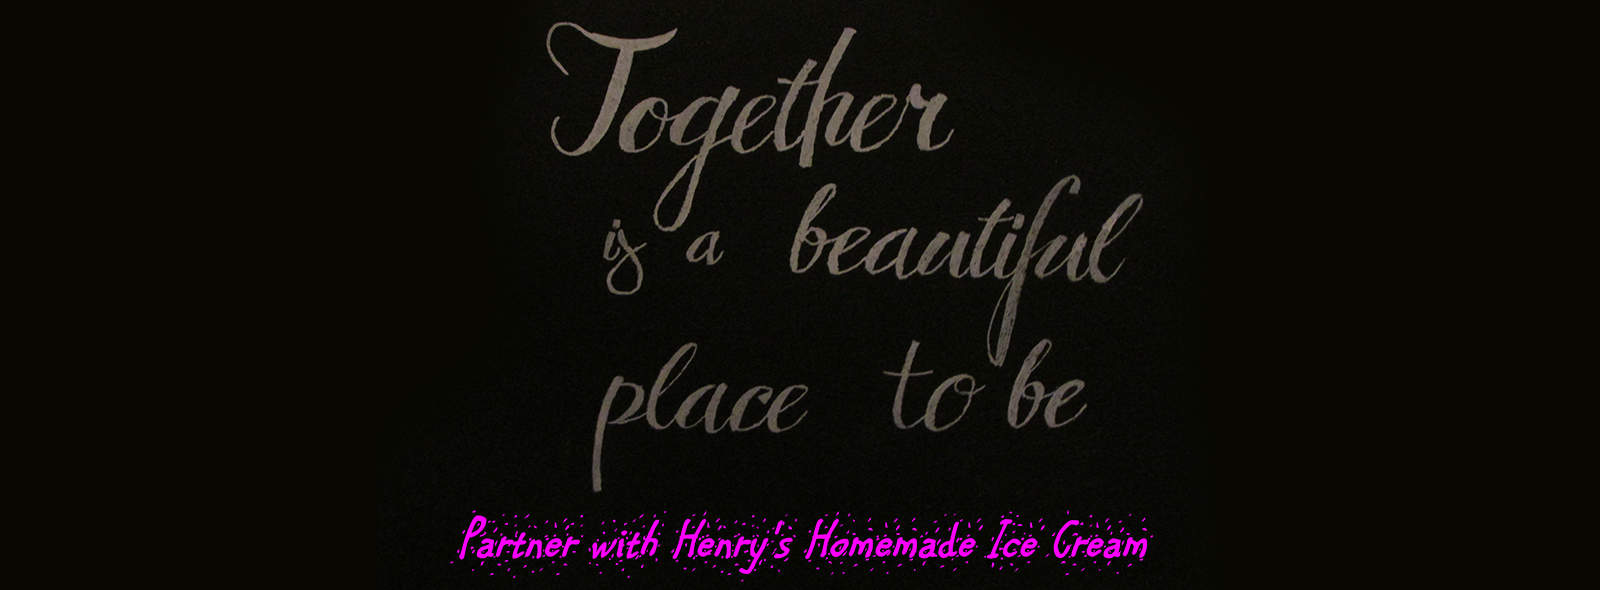 Partner with Henry's Homemade Ice Cream